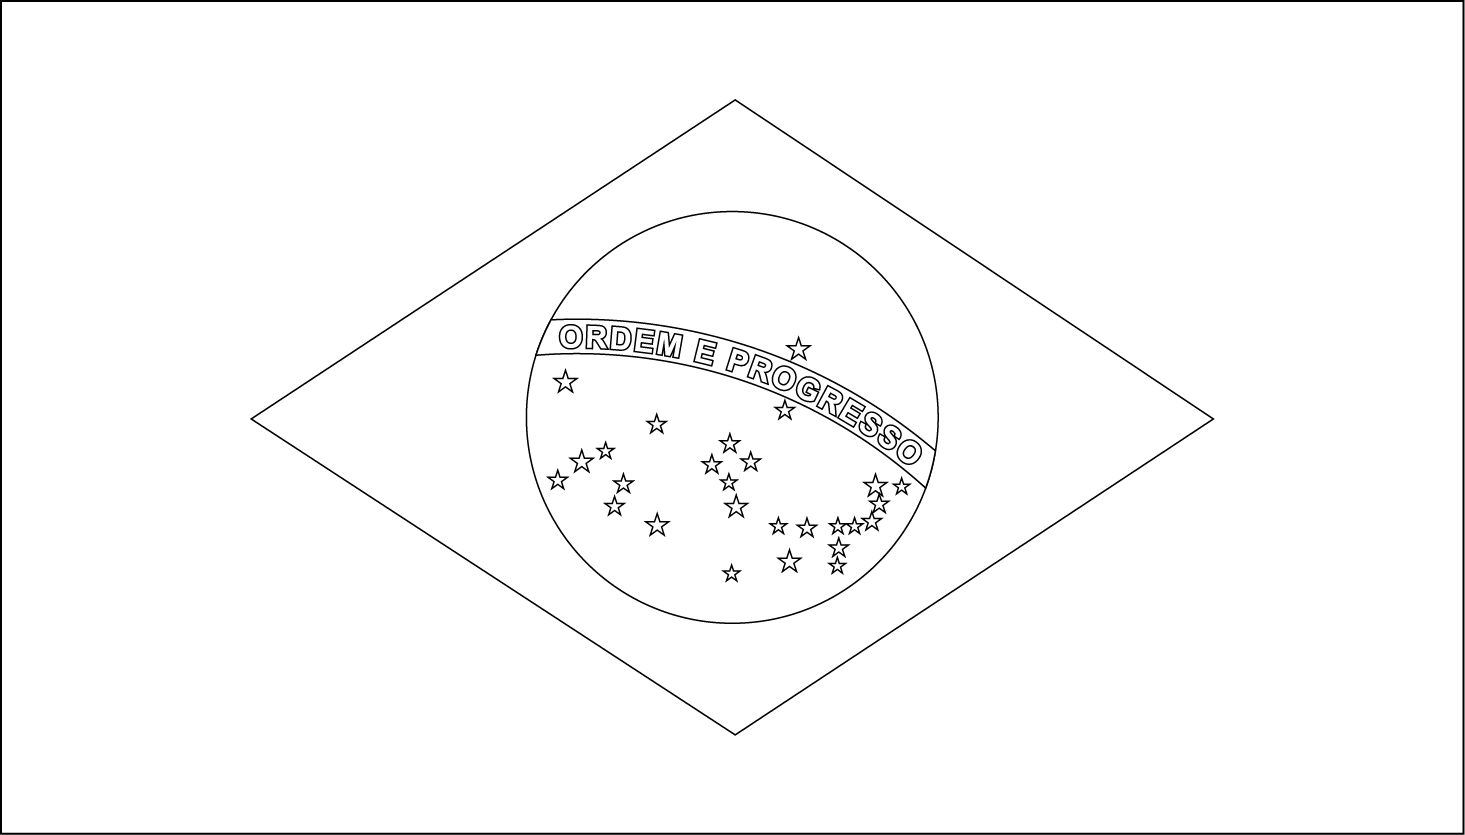 printable pictures of brazil flag download brazil flag coloring page coloring wizards of flag printable brazil pictures